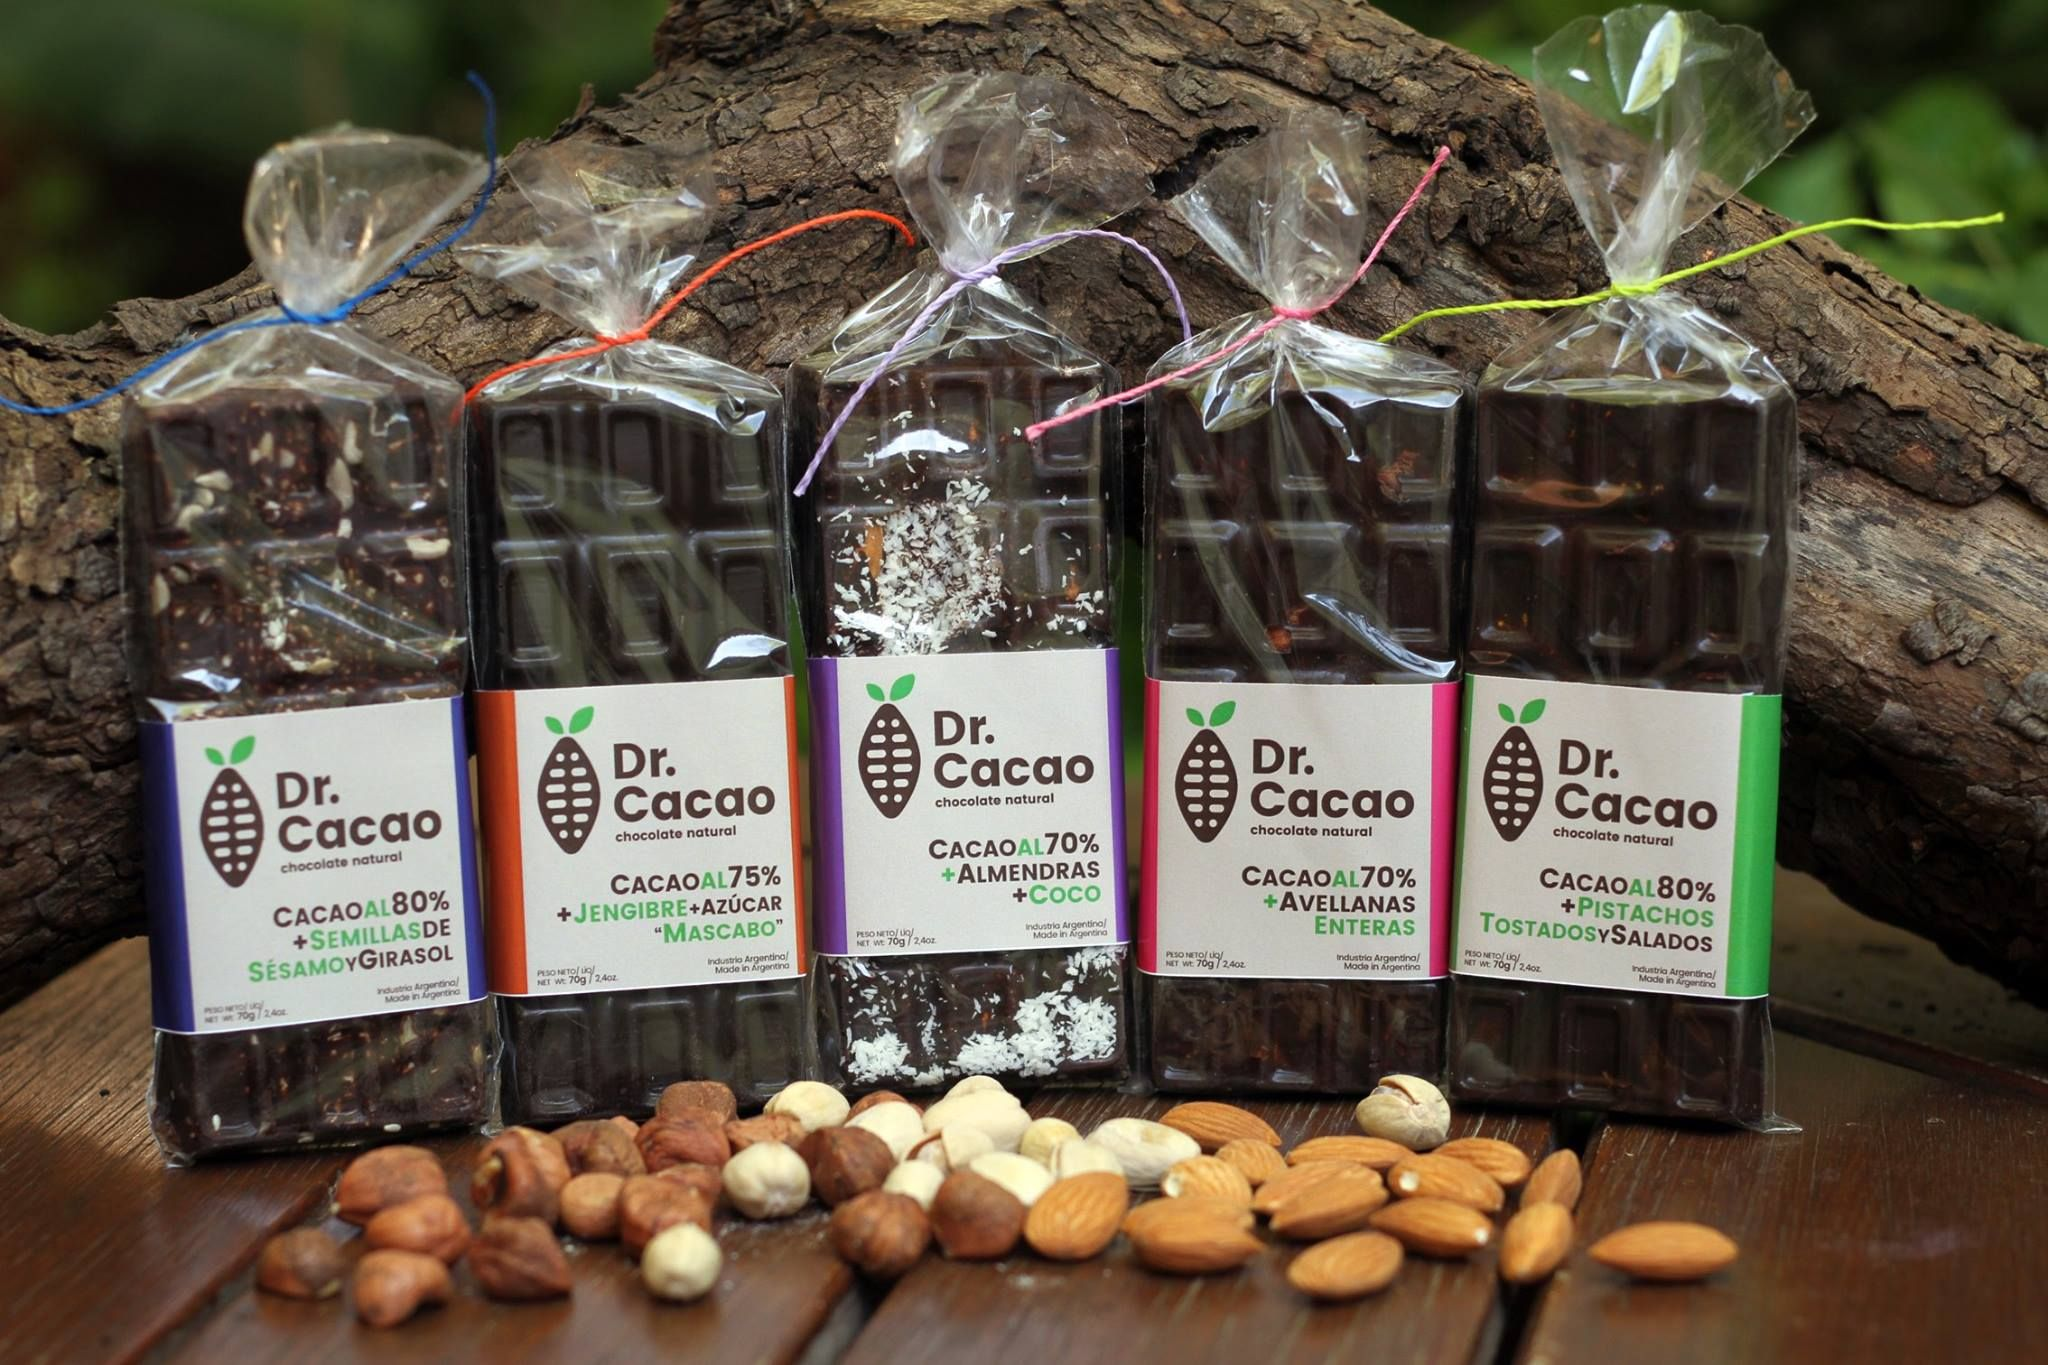 Dr. Cacao